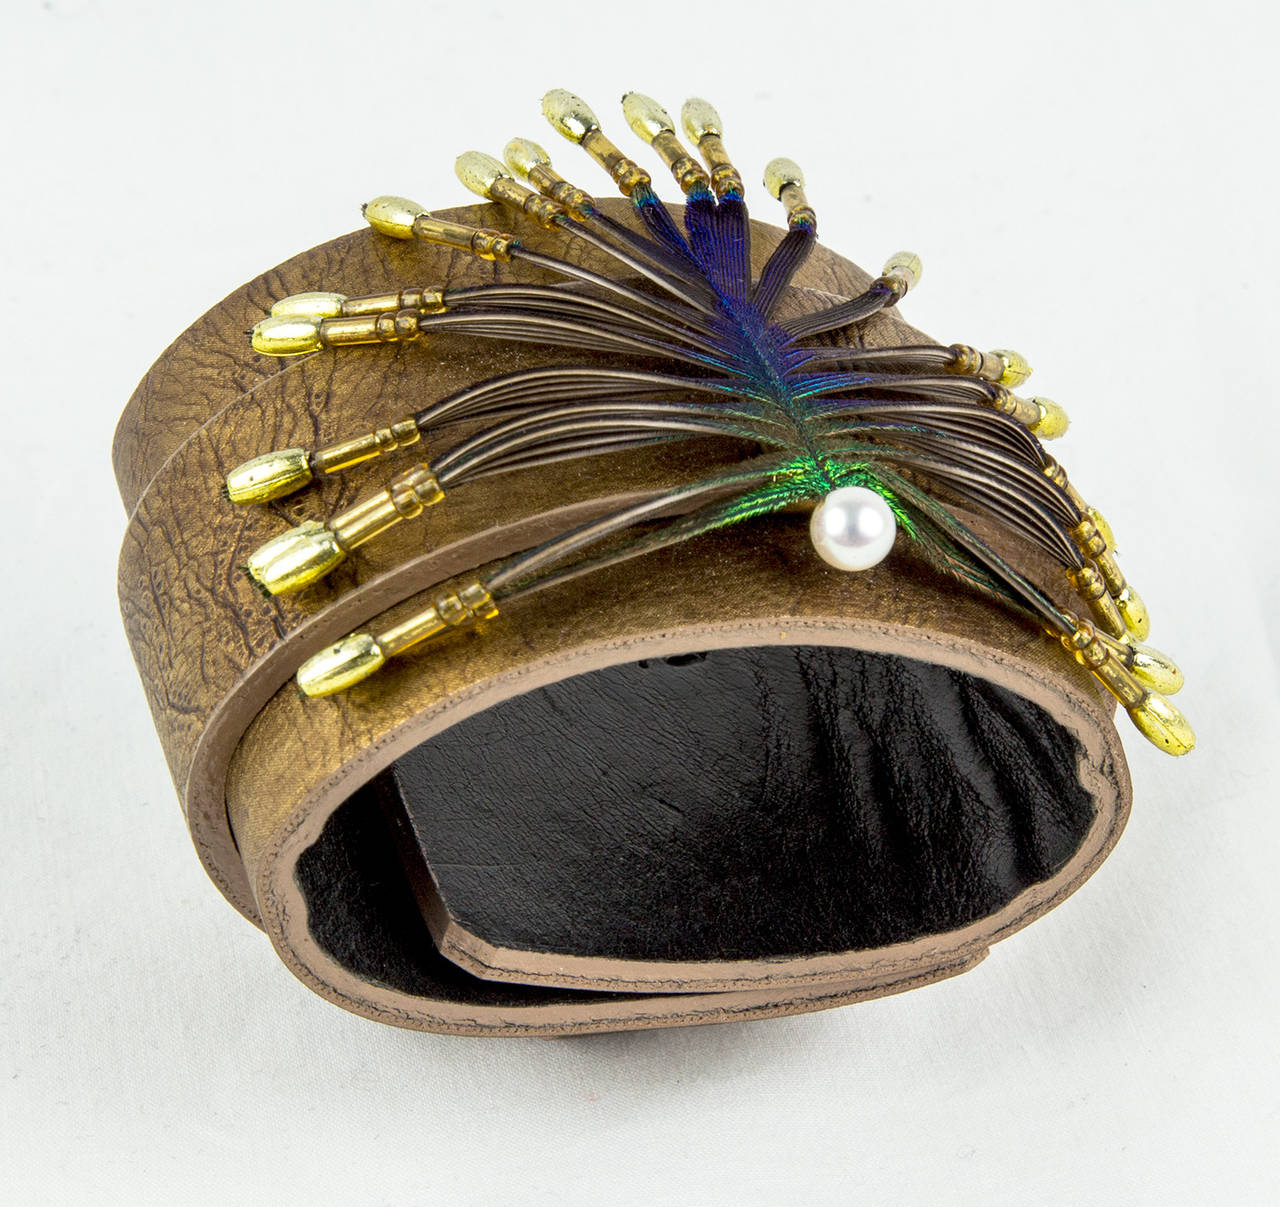 Modernist Stylized Peacock Feather Pendant on Leather Cuff For Sale